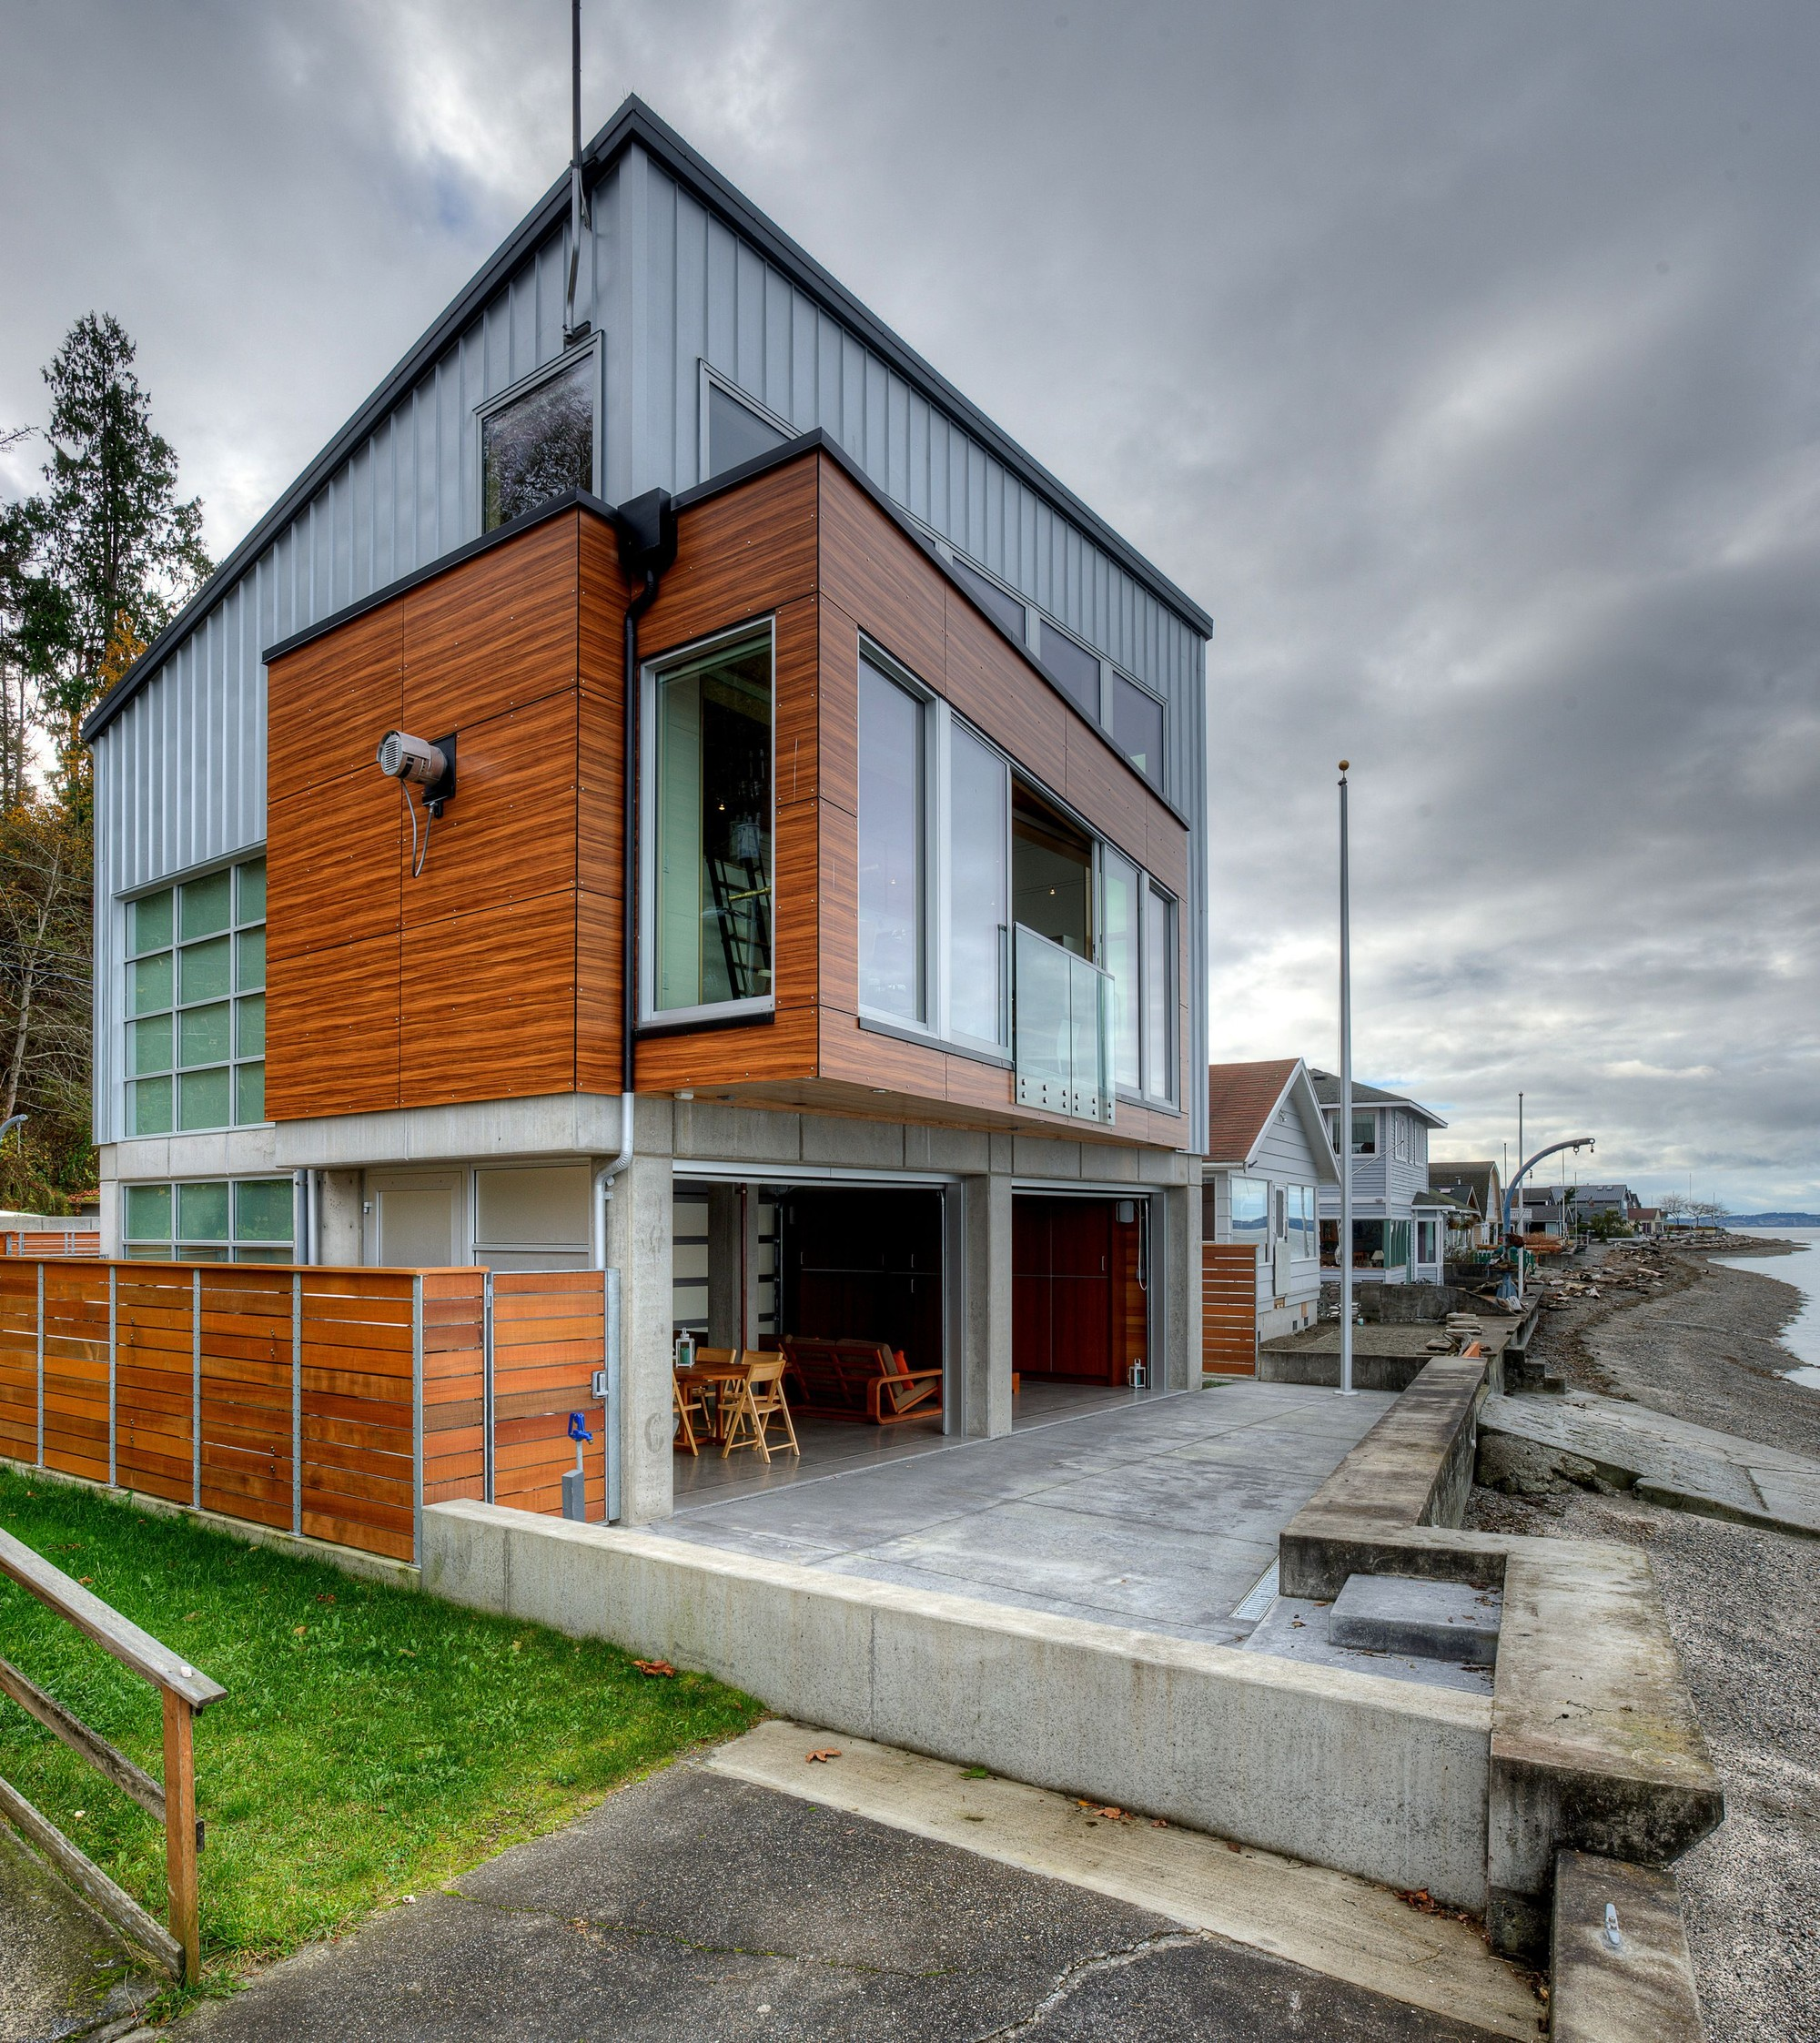 Gallery of tsunami house designs northwest architect 9 for Home designs northwest